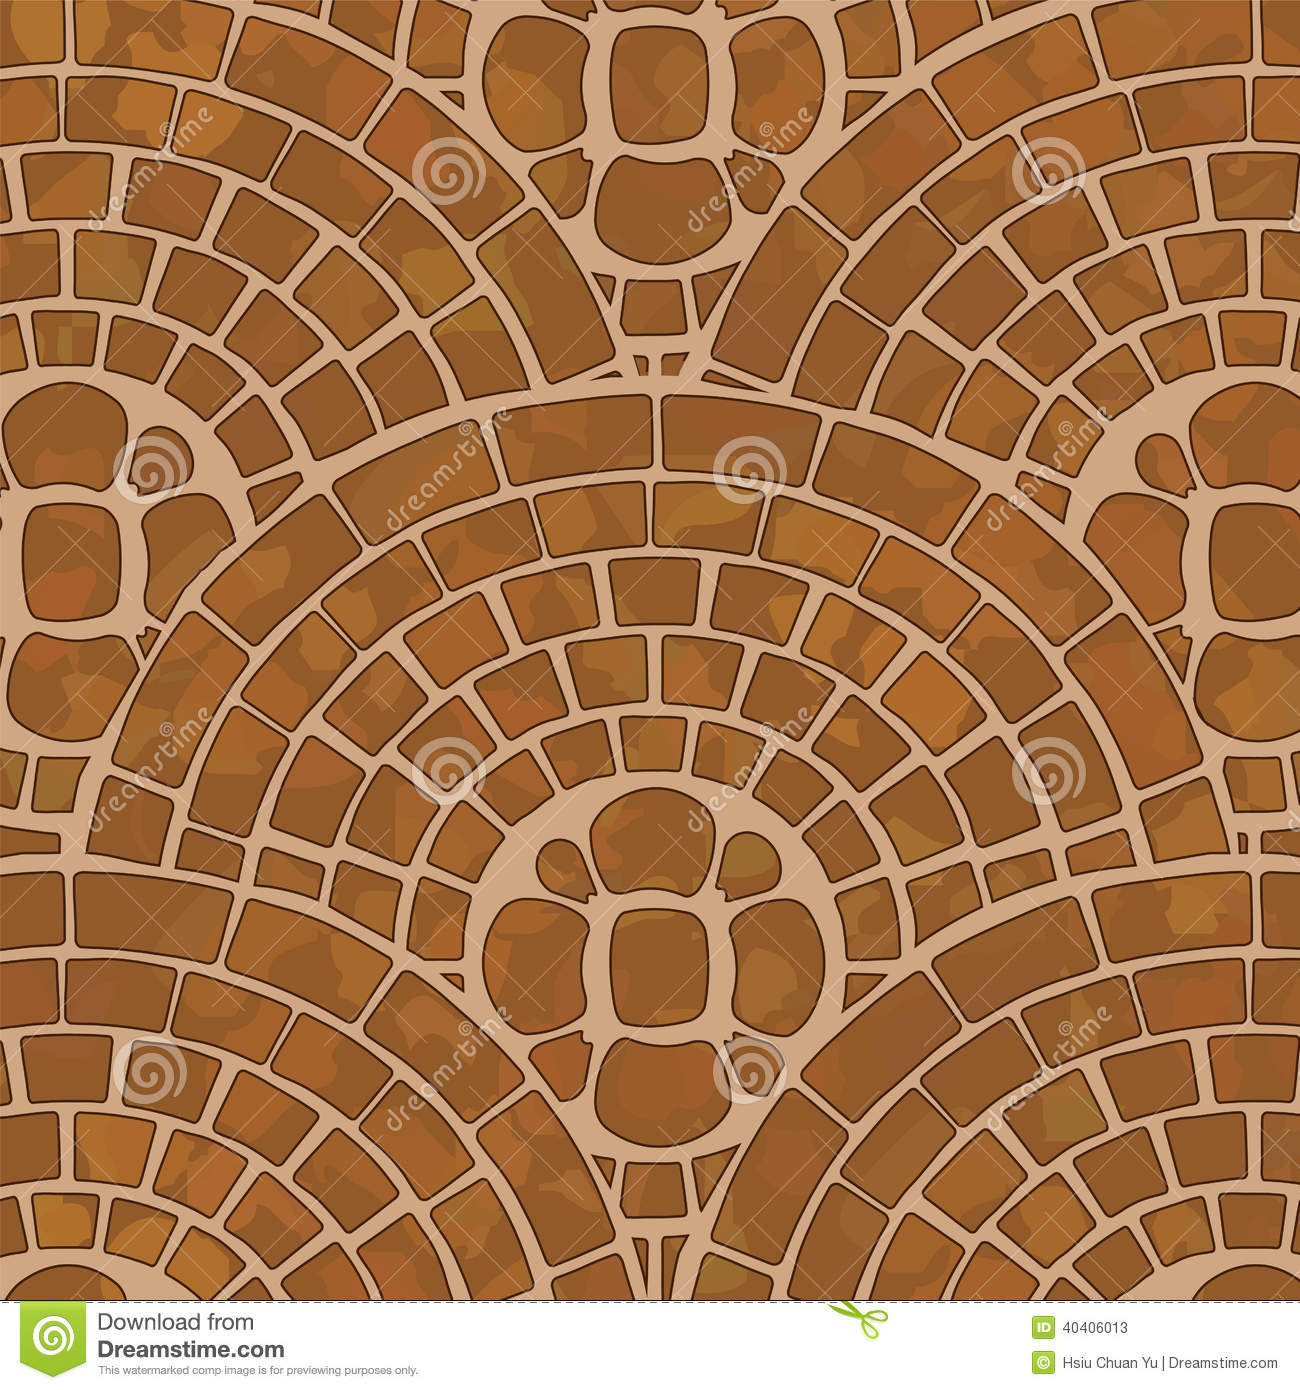 It is a texture of brown tile ground with mosaic pattern.